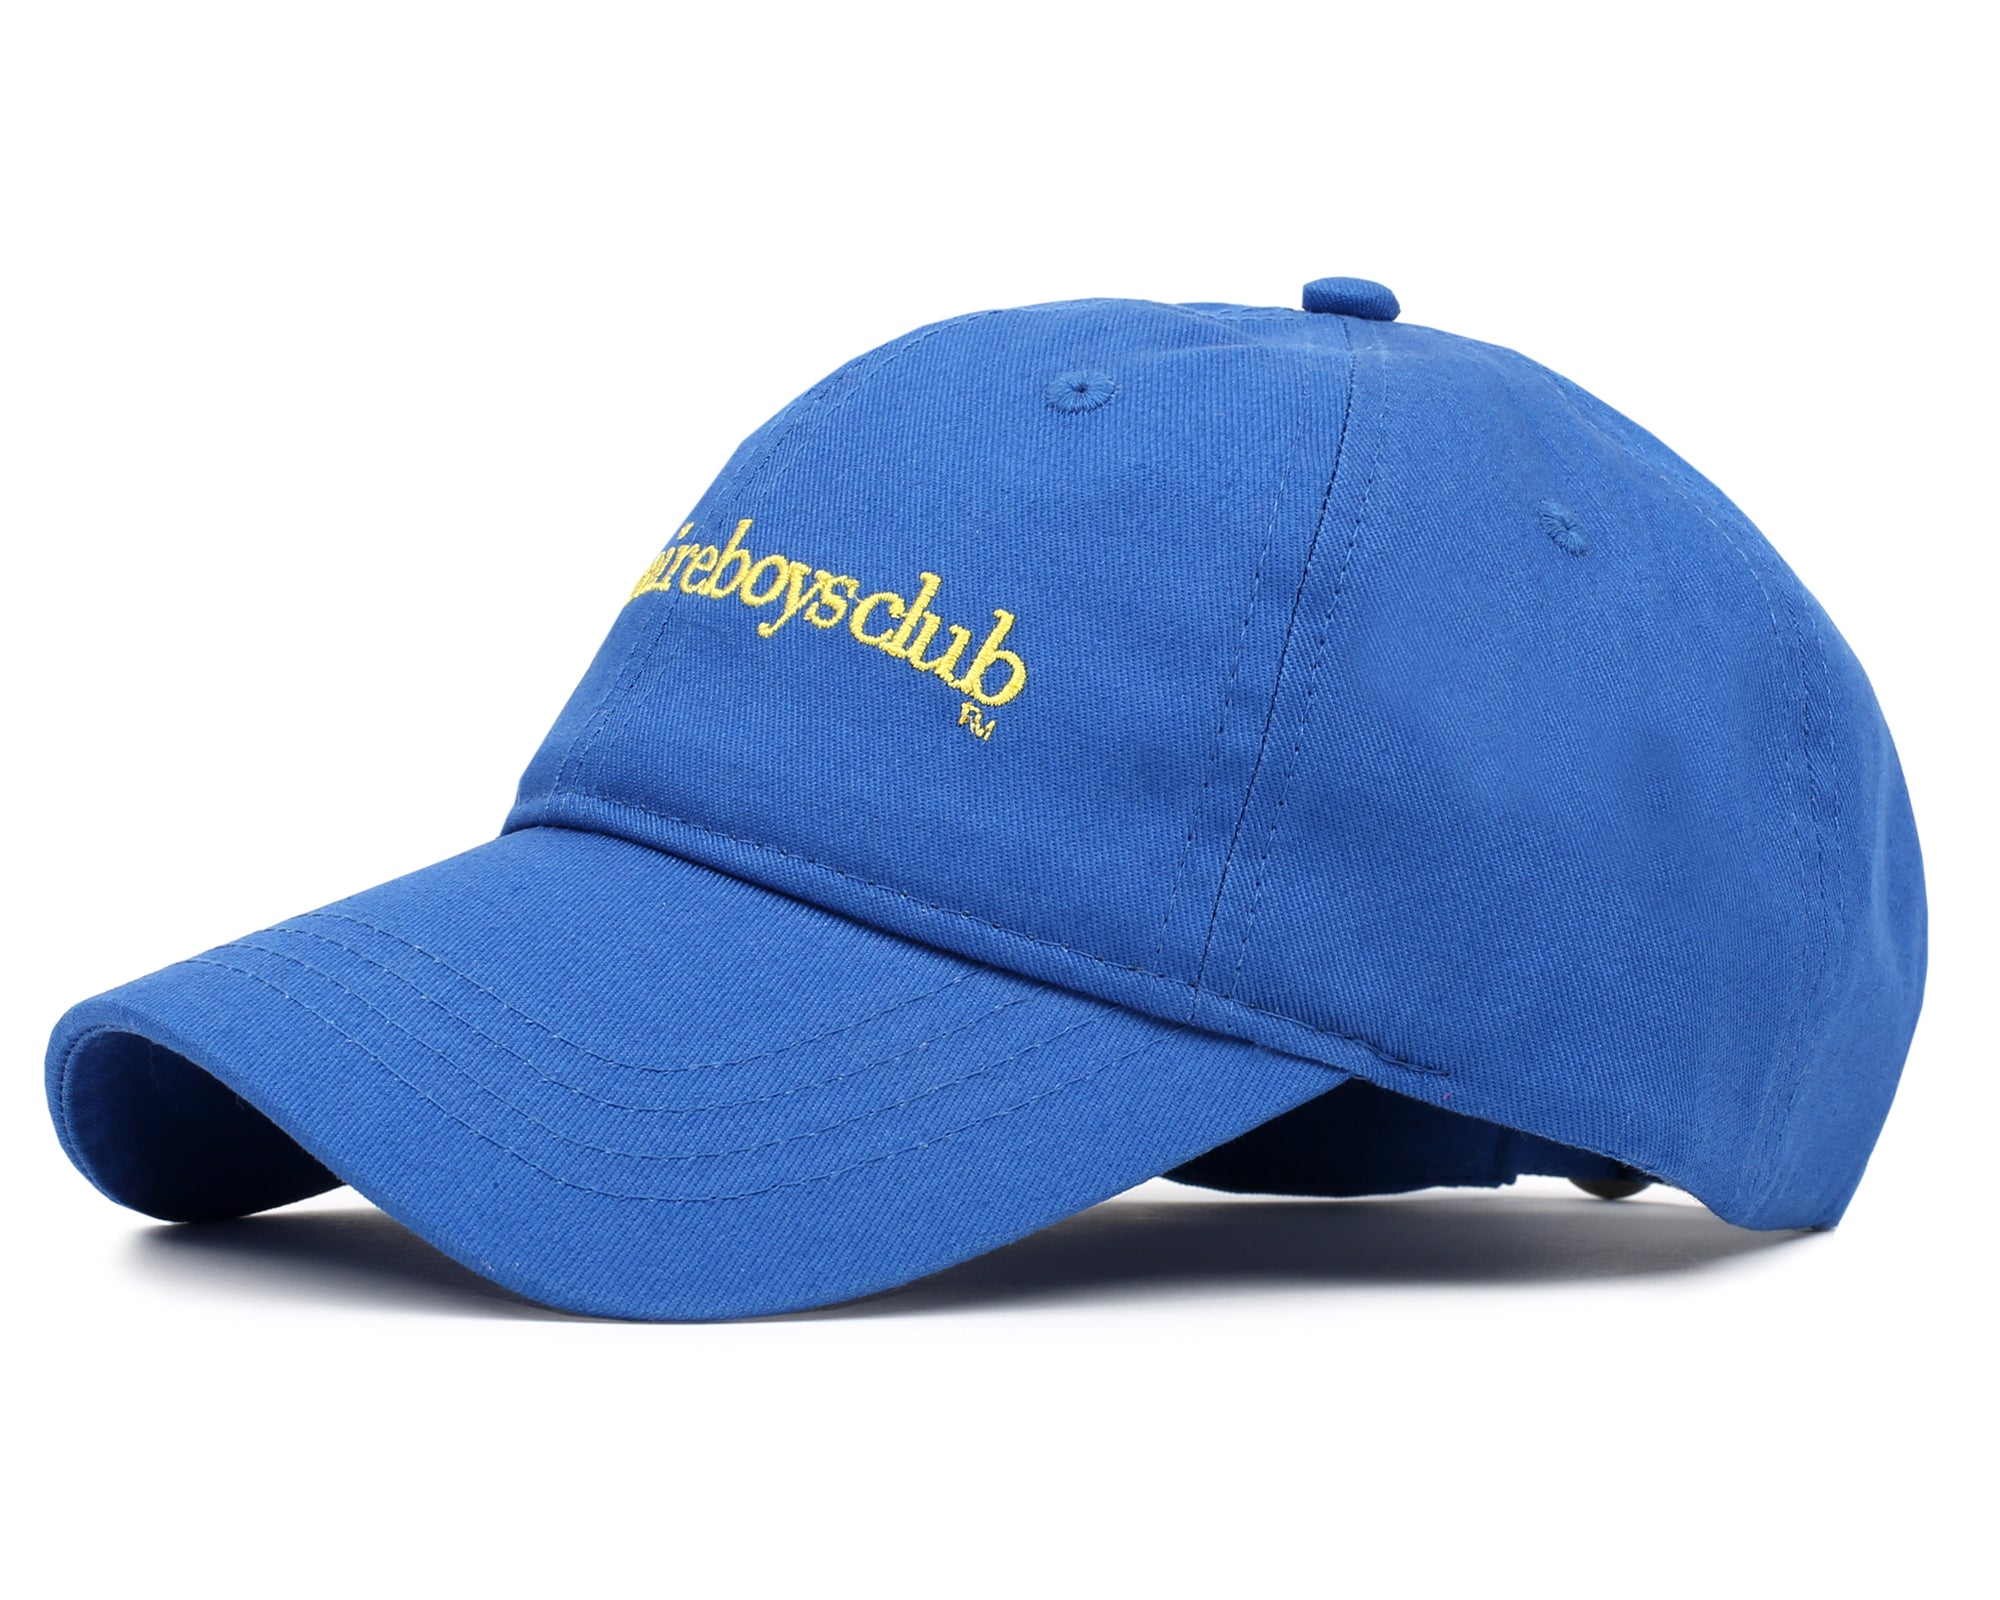 EMBROIDERED CURVED VISOR CAP - BLUE